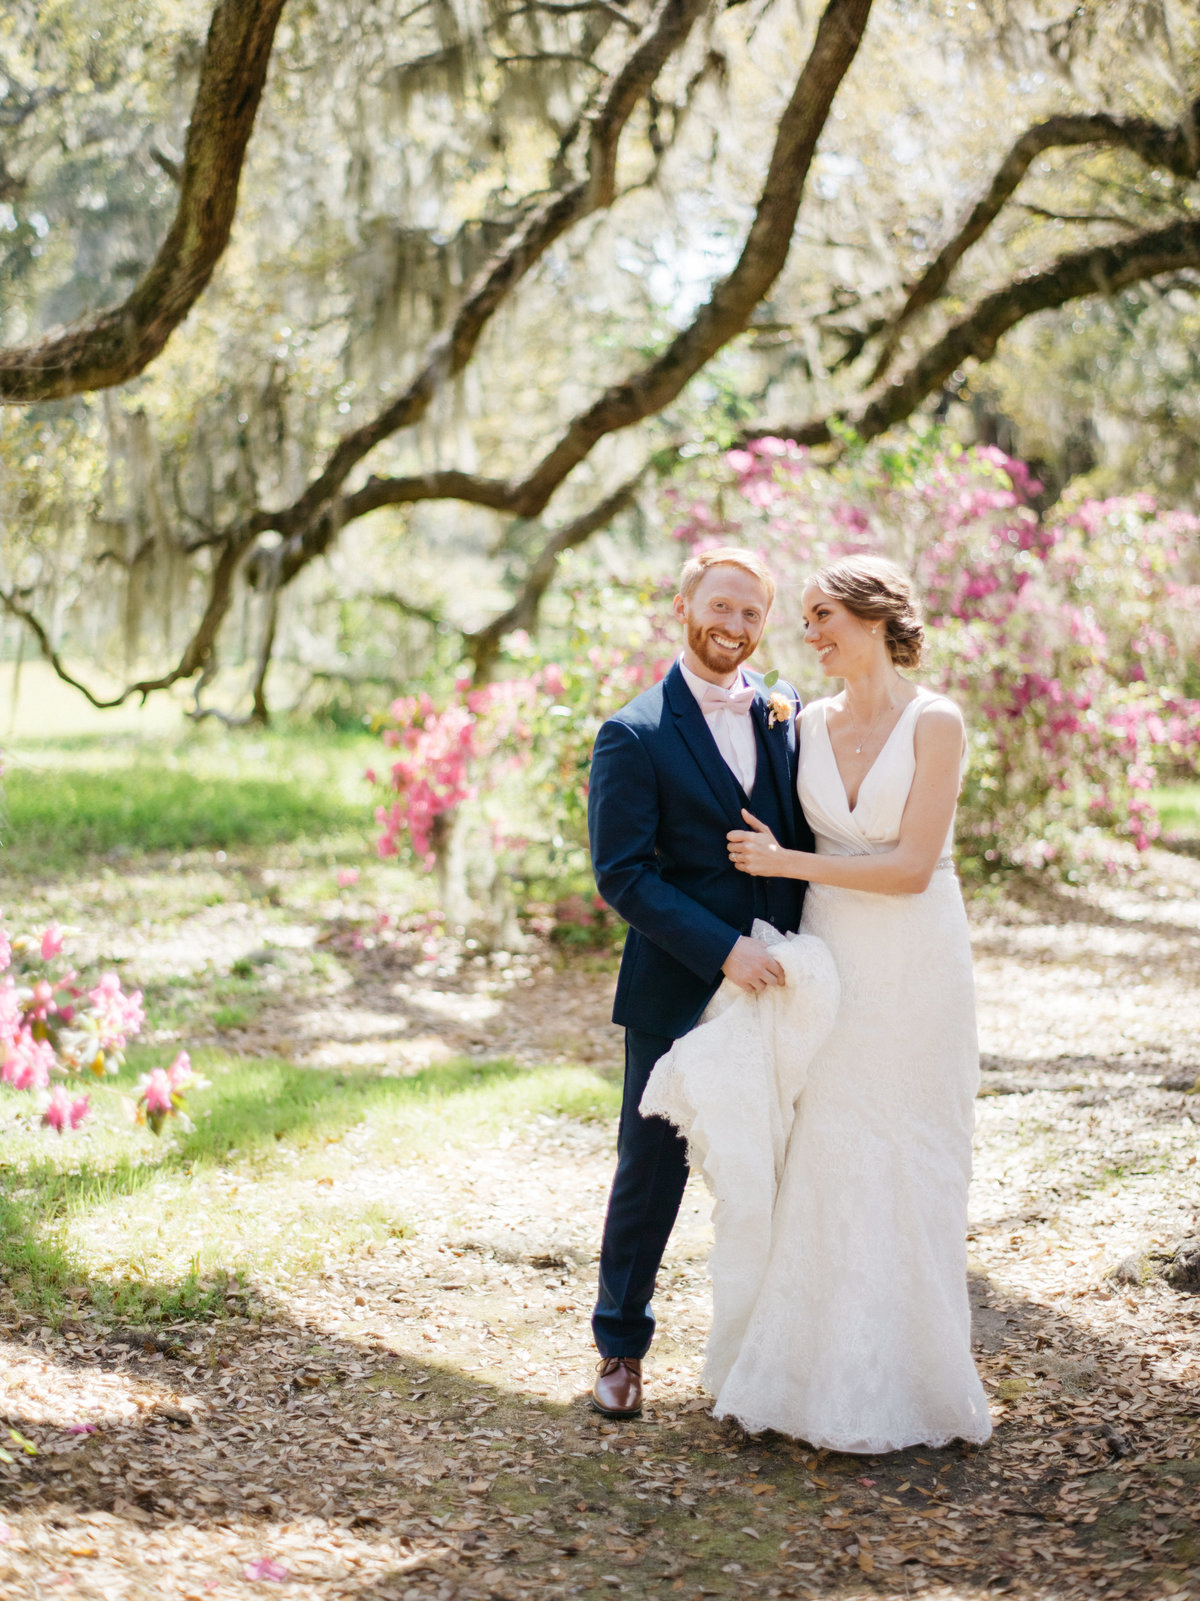 charleston-wedding-venues-magnolia-plantation-philip-casey-photography-018